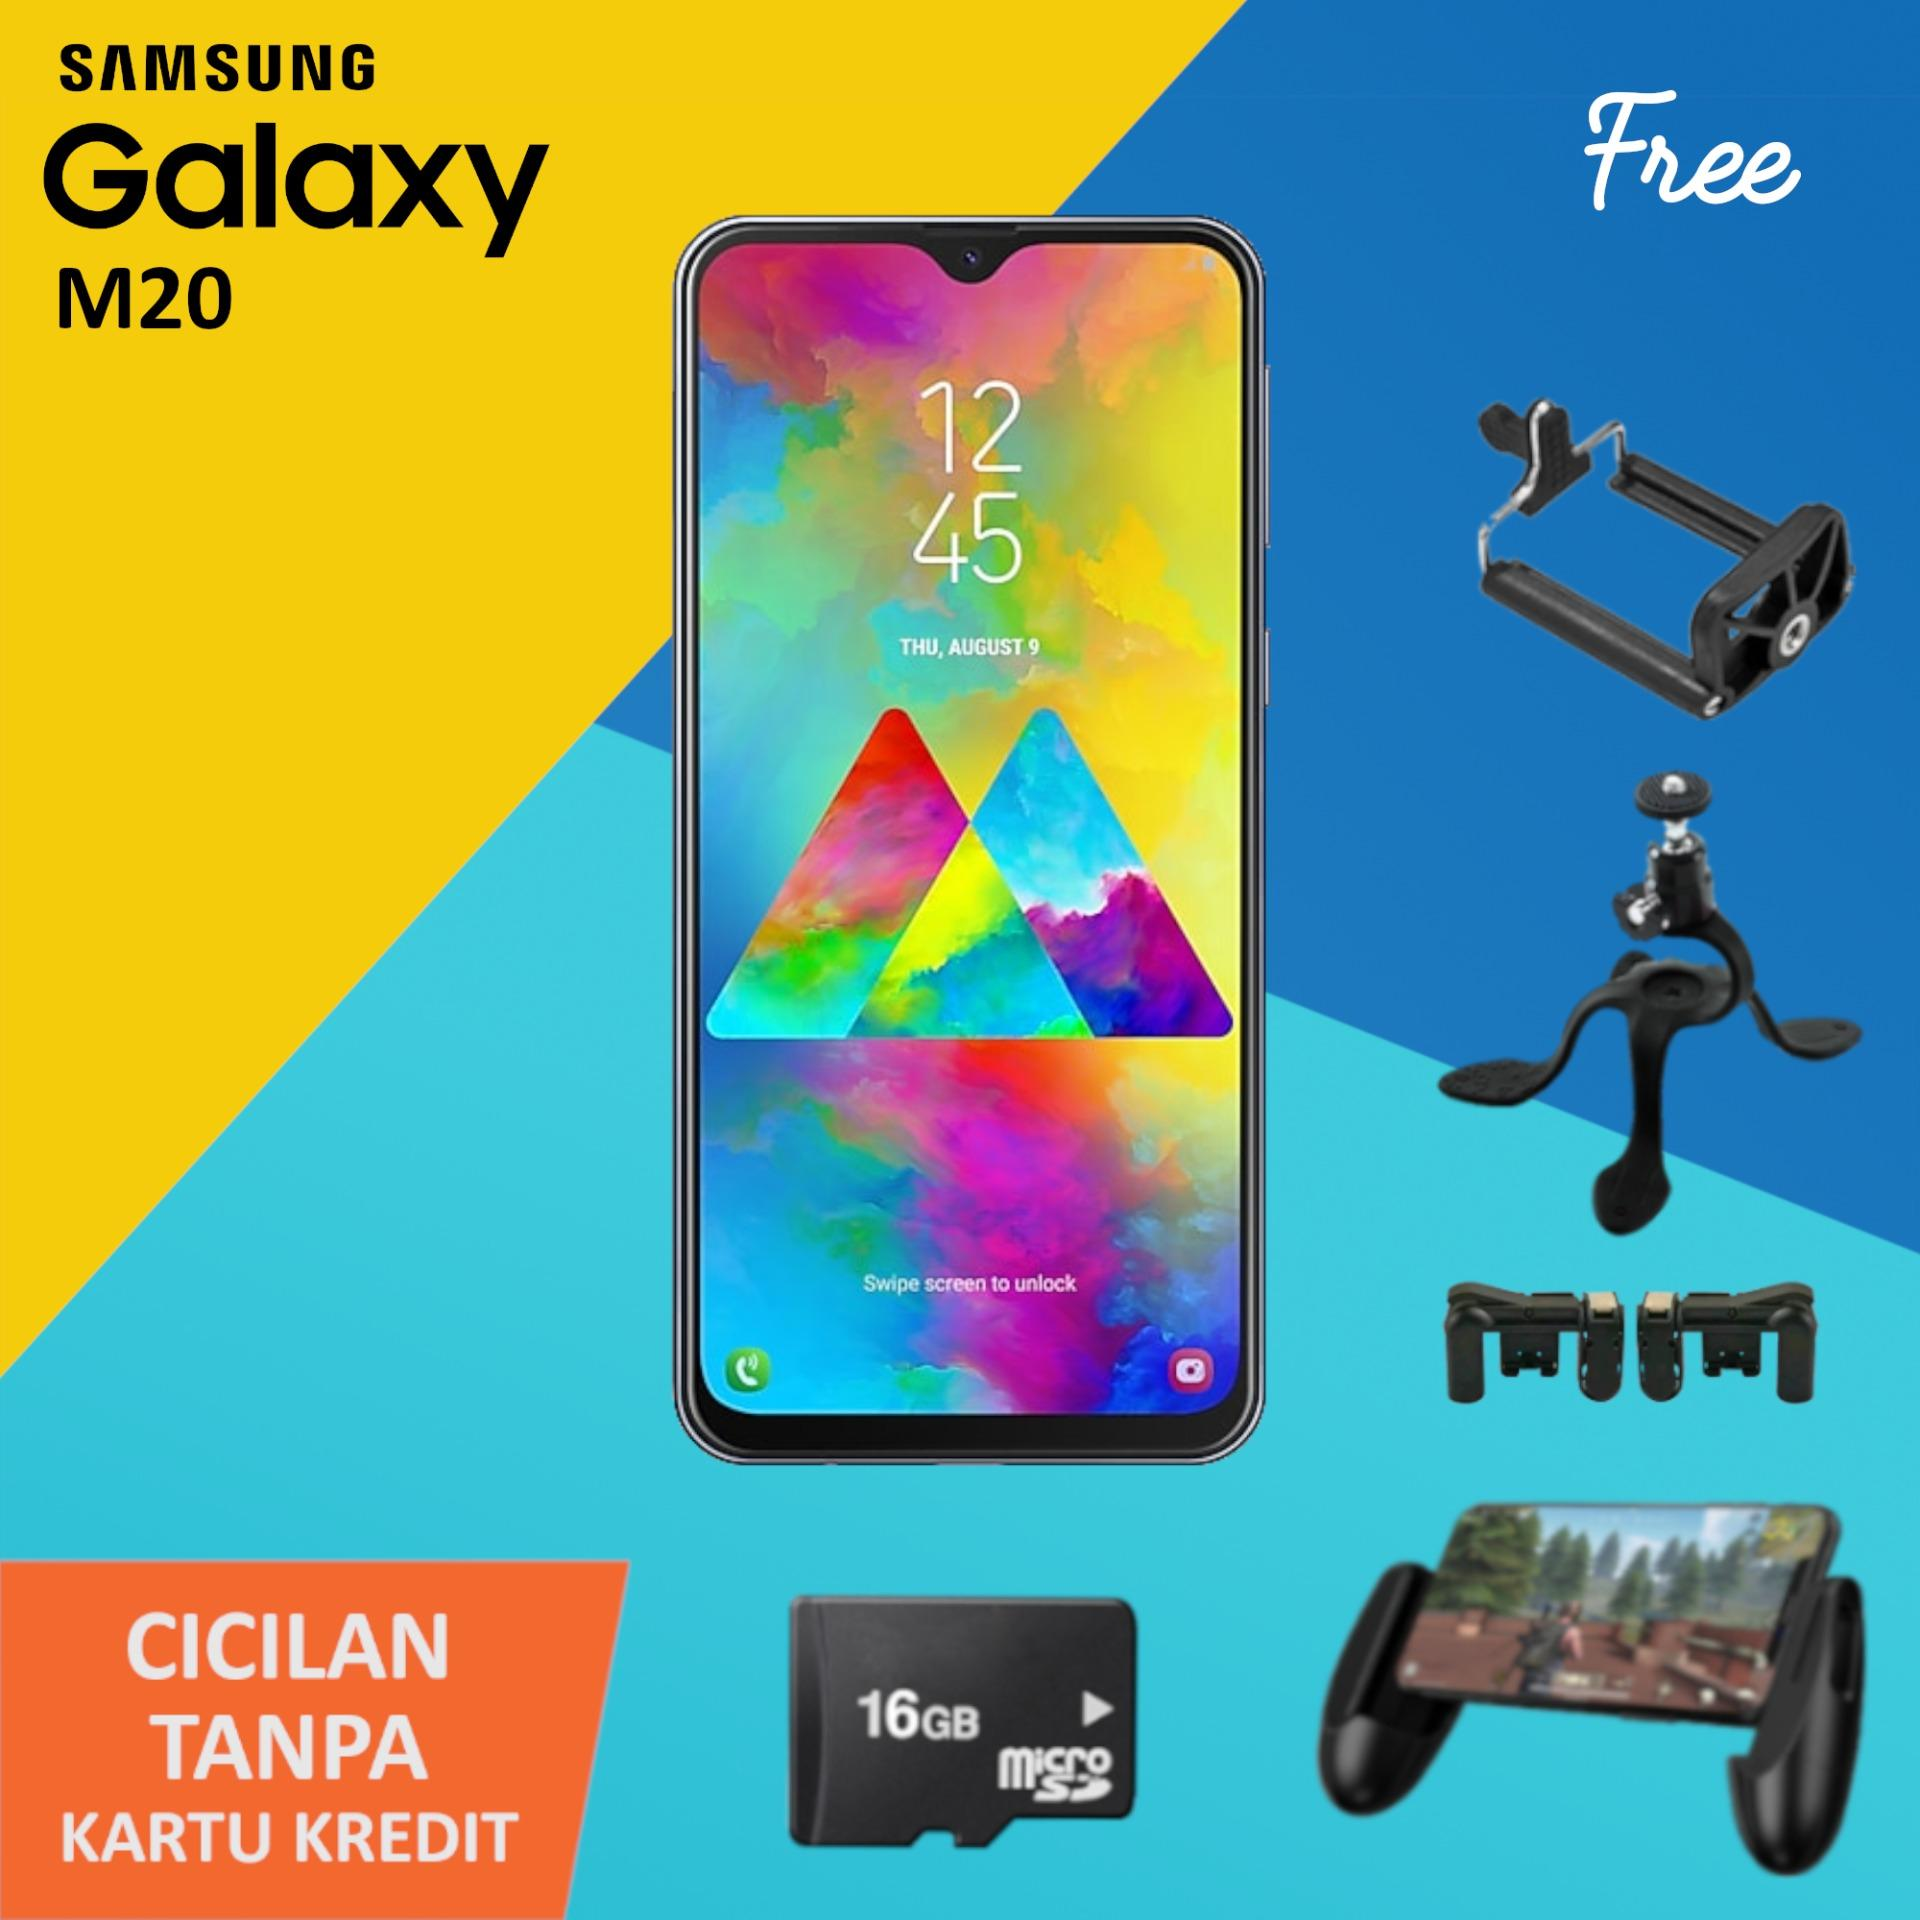 Samsung Galaxy M20 Octa-Core 5000mAh Fast Charging + Free Special Gift